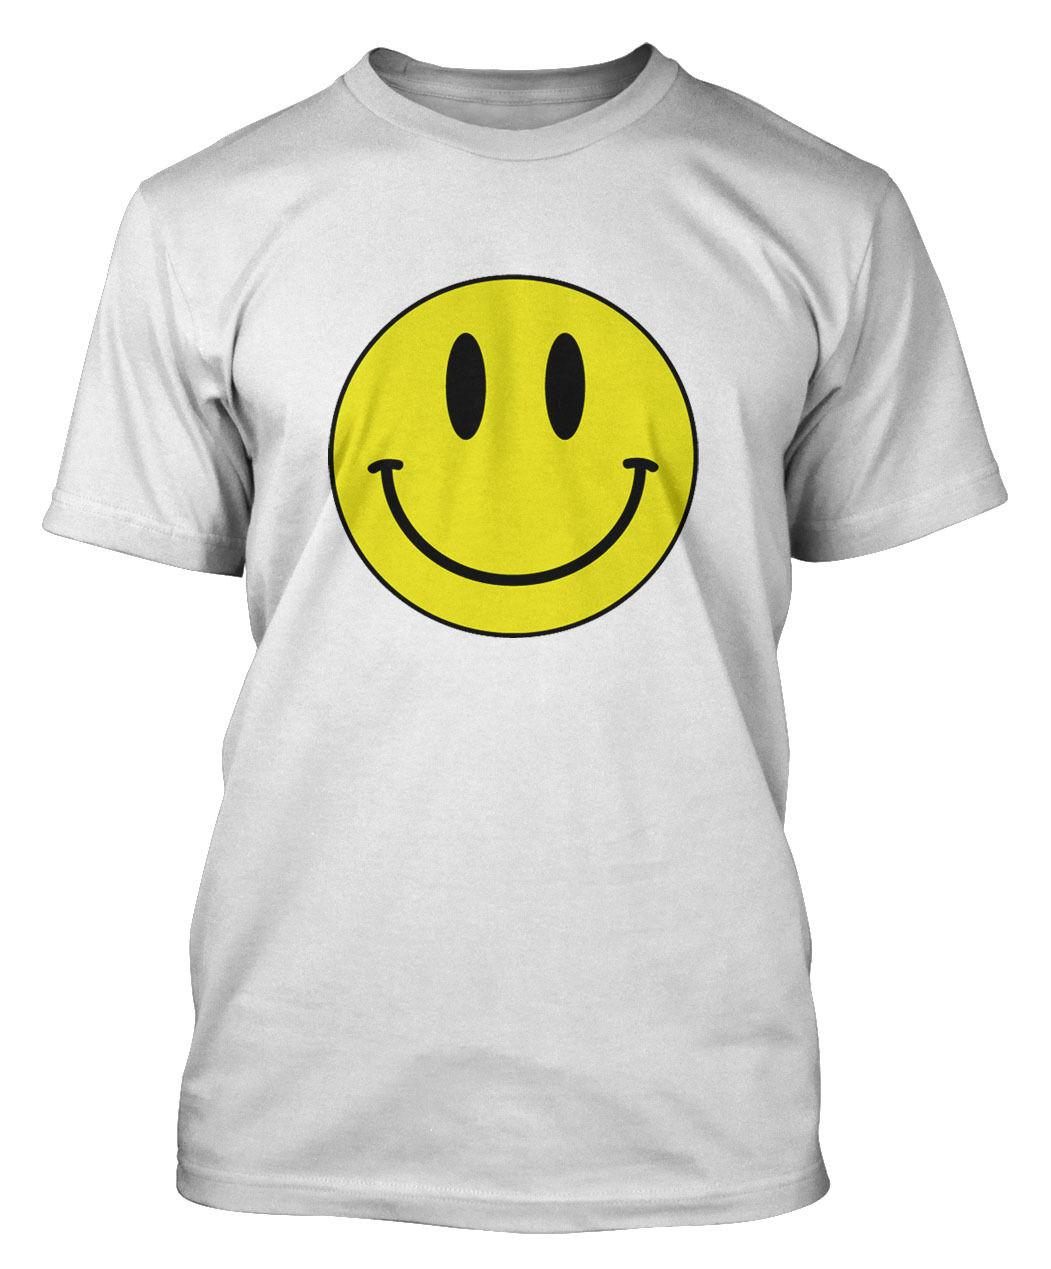 9afe8131d8e Wholesale Discount Face T Shirt Acid House T Shirt Retro Club 1980s 1990s  Dtg Men Cotton T Shirt Printed T Shirt Buy Cool T Shirts Funky Tee Shirts  From ...